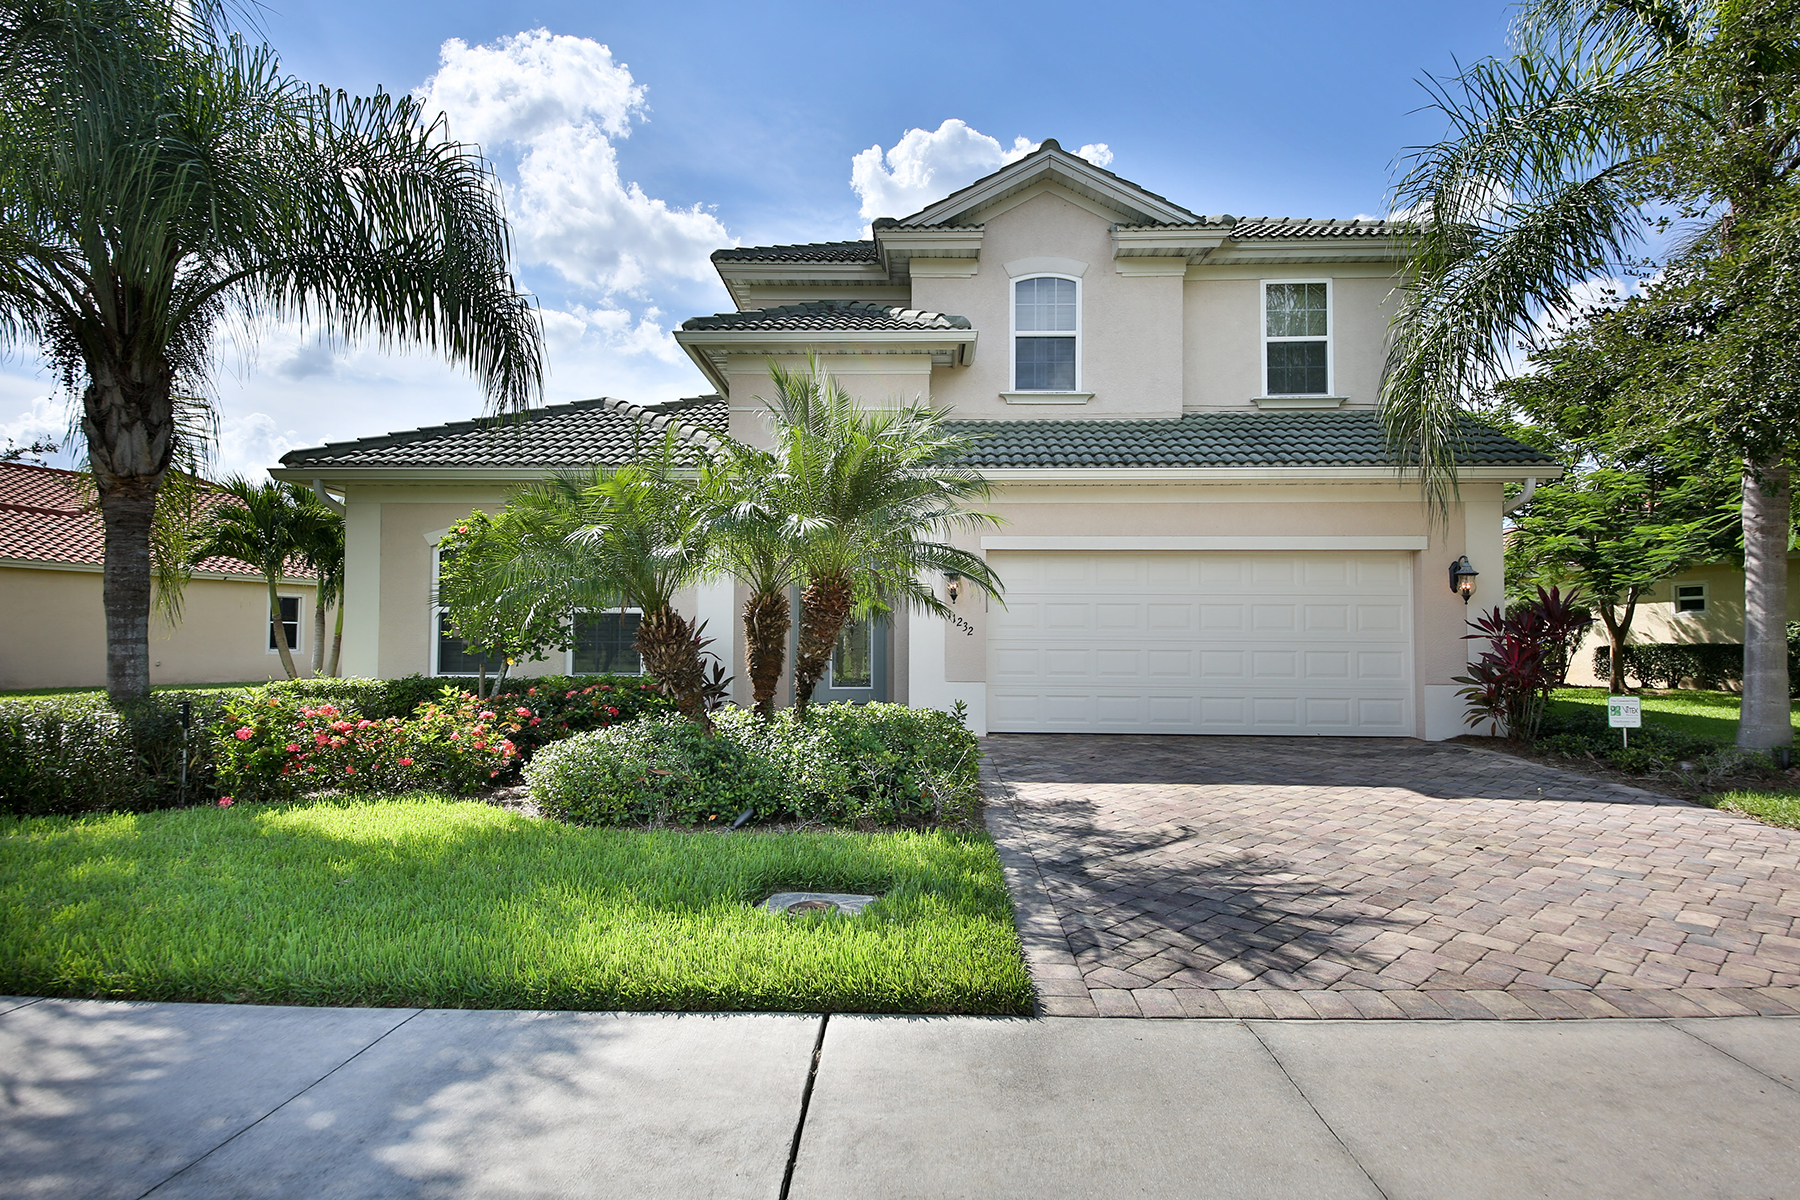 Single Family Home for Sale at BRIDGETOWN AT THE PLANTATION 11232 Lithgow Ln Fort Myers, Florida, 33913 United States